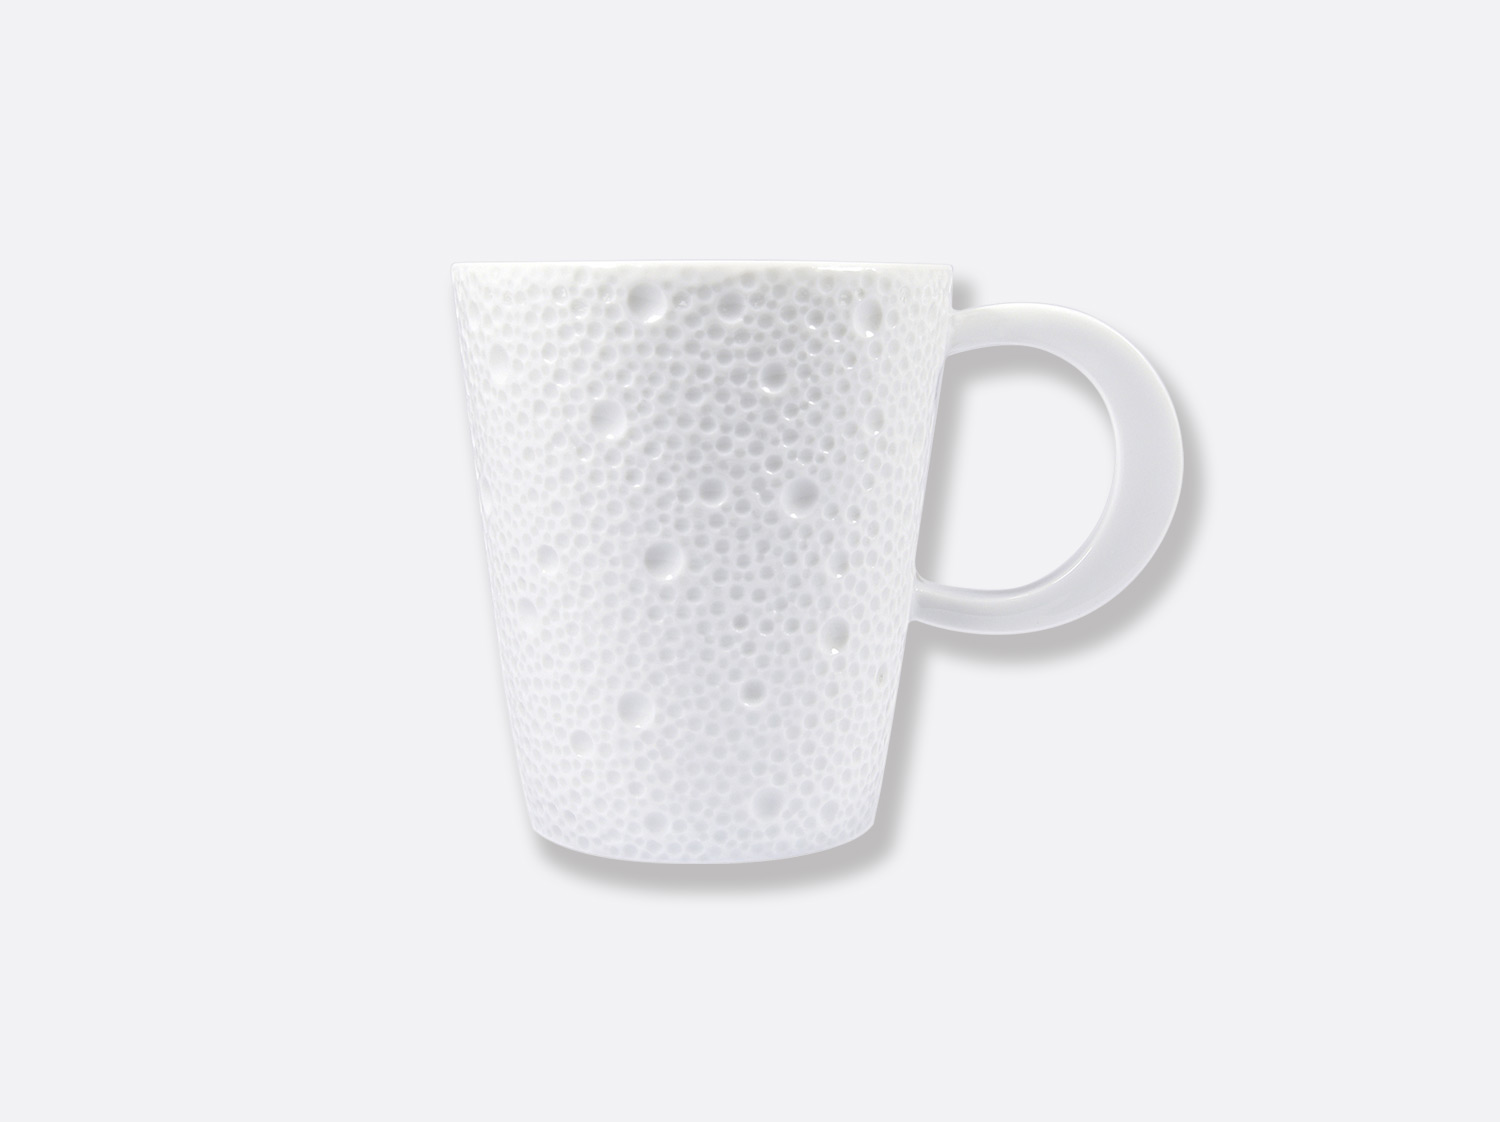 Mug 25 cl en porcelaine de la collection ECUME BLANC Bernardaud